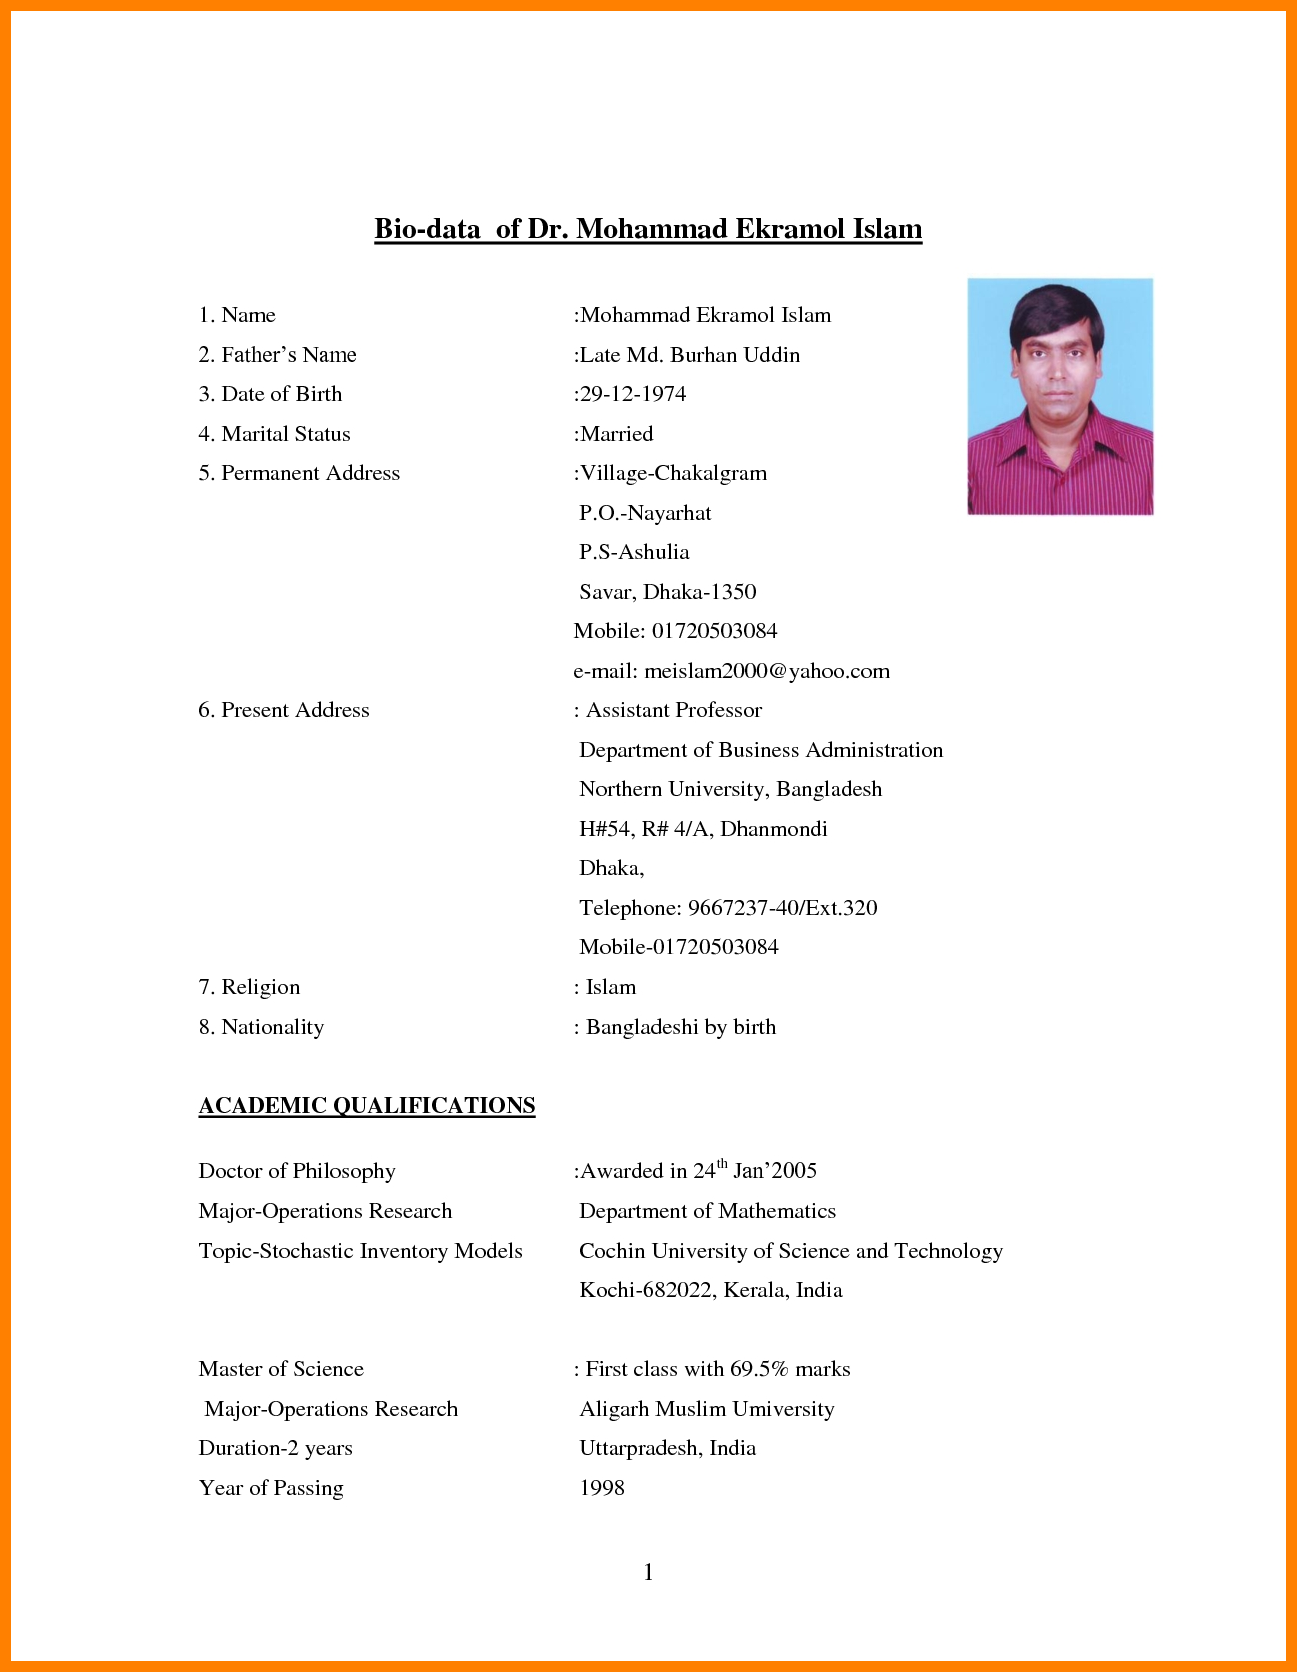 Hybrid Resume Examples Glamorous 5 Biodata Format For Job Word  Sephora Resume  Kp  Pinterest